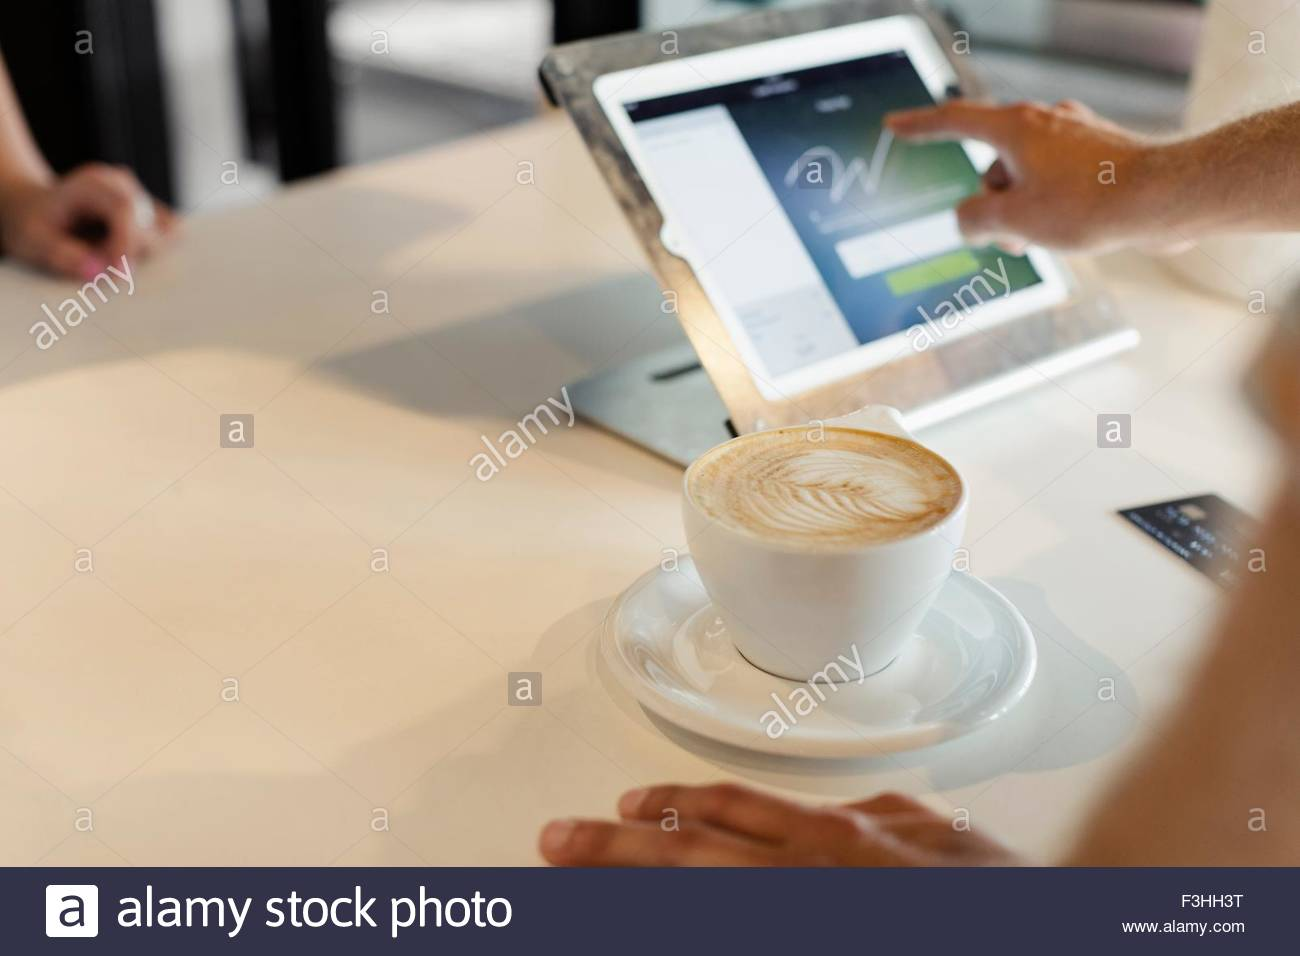 Customer paying for coffee in coffee shop, signing signature on digital transaction technology - Stock Image